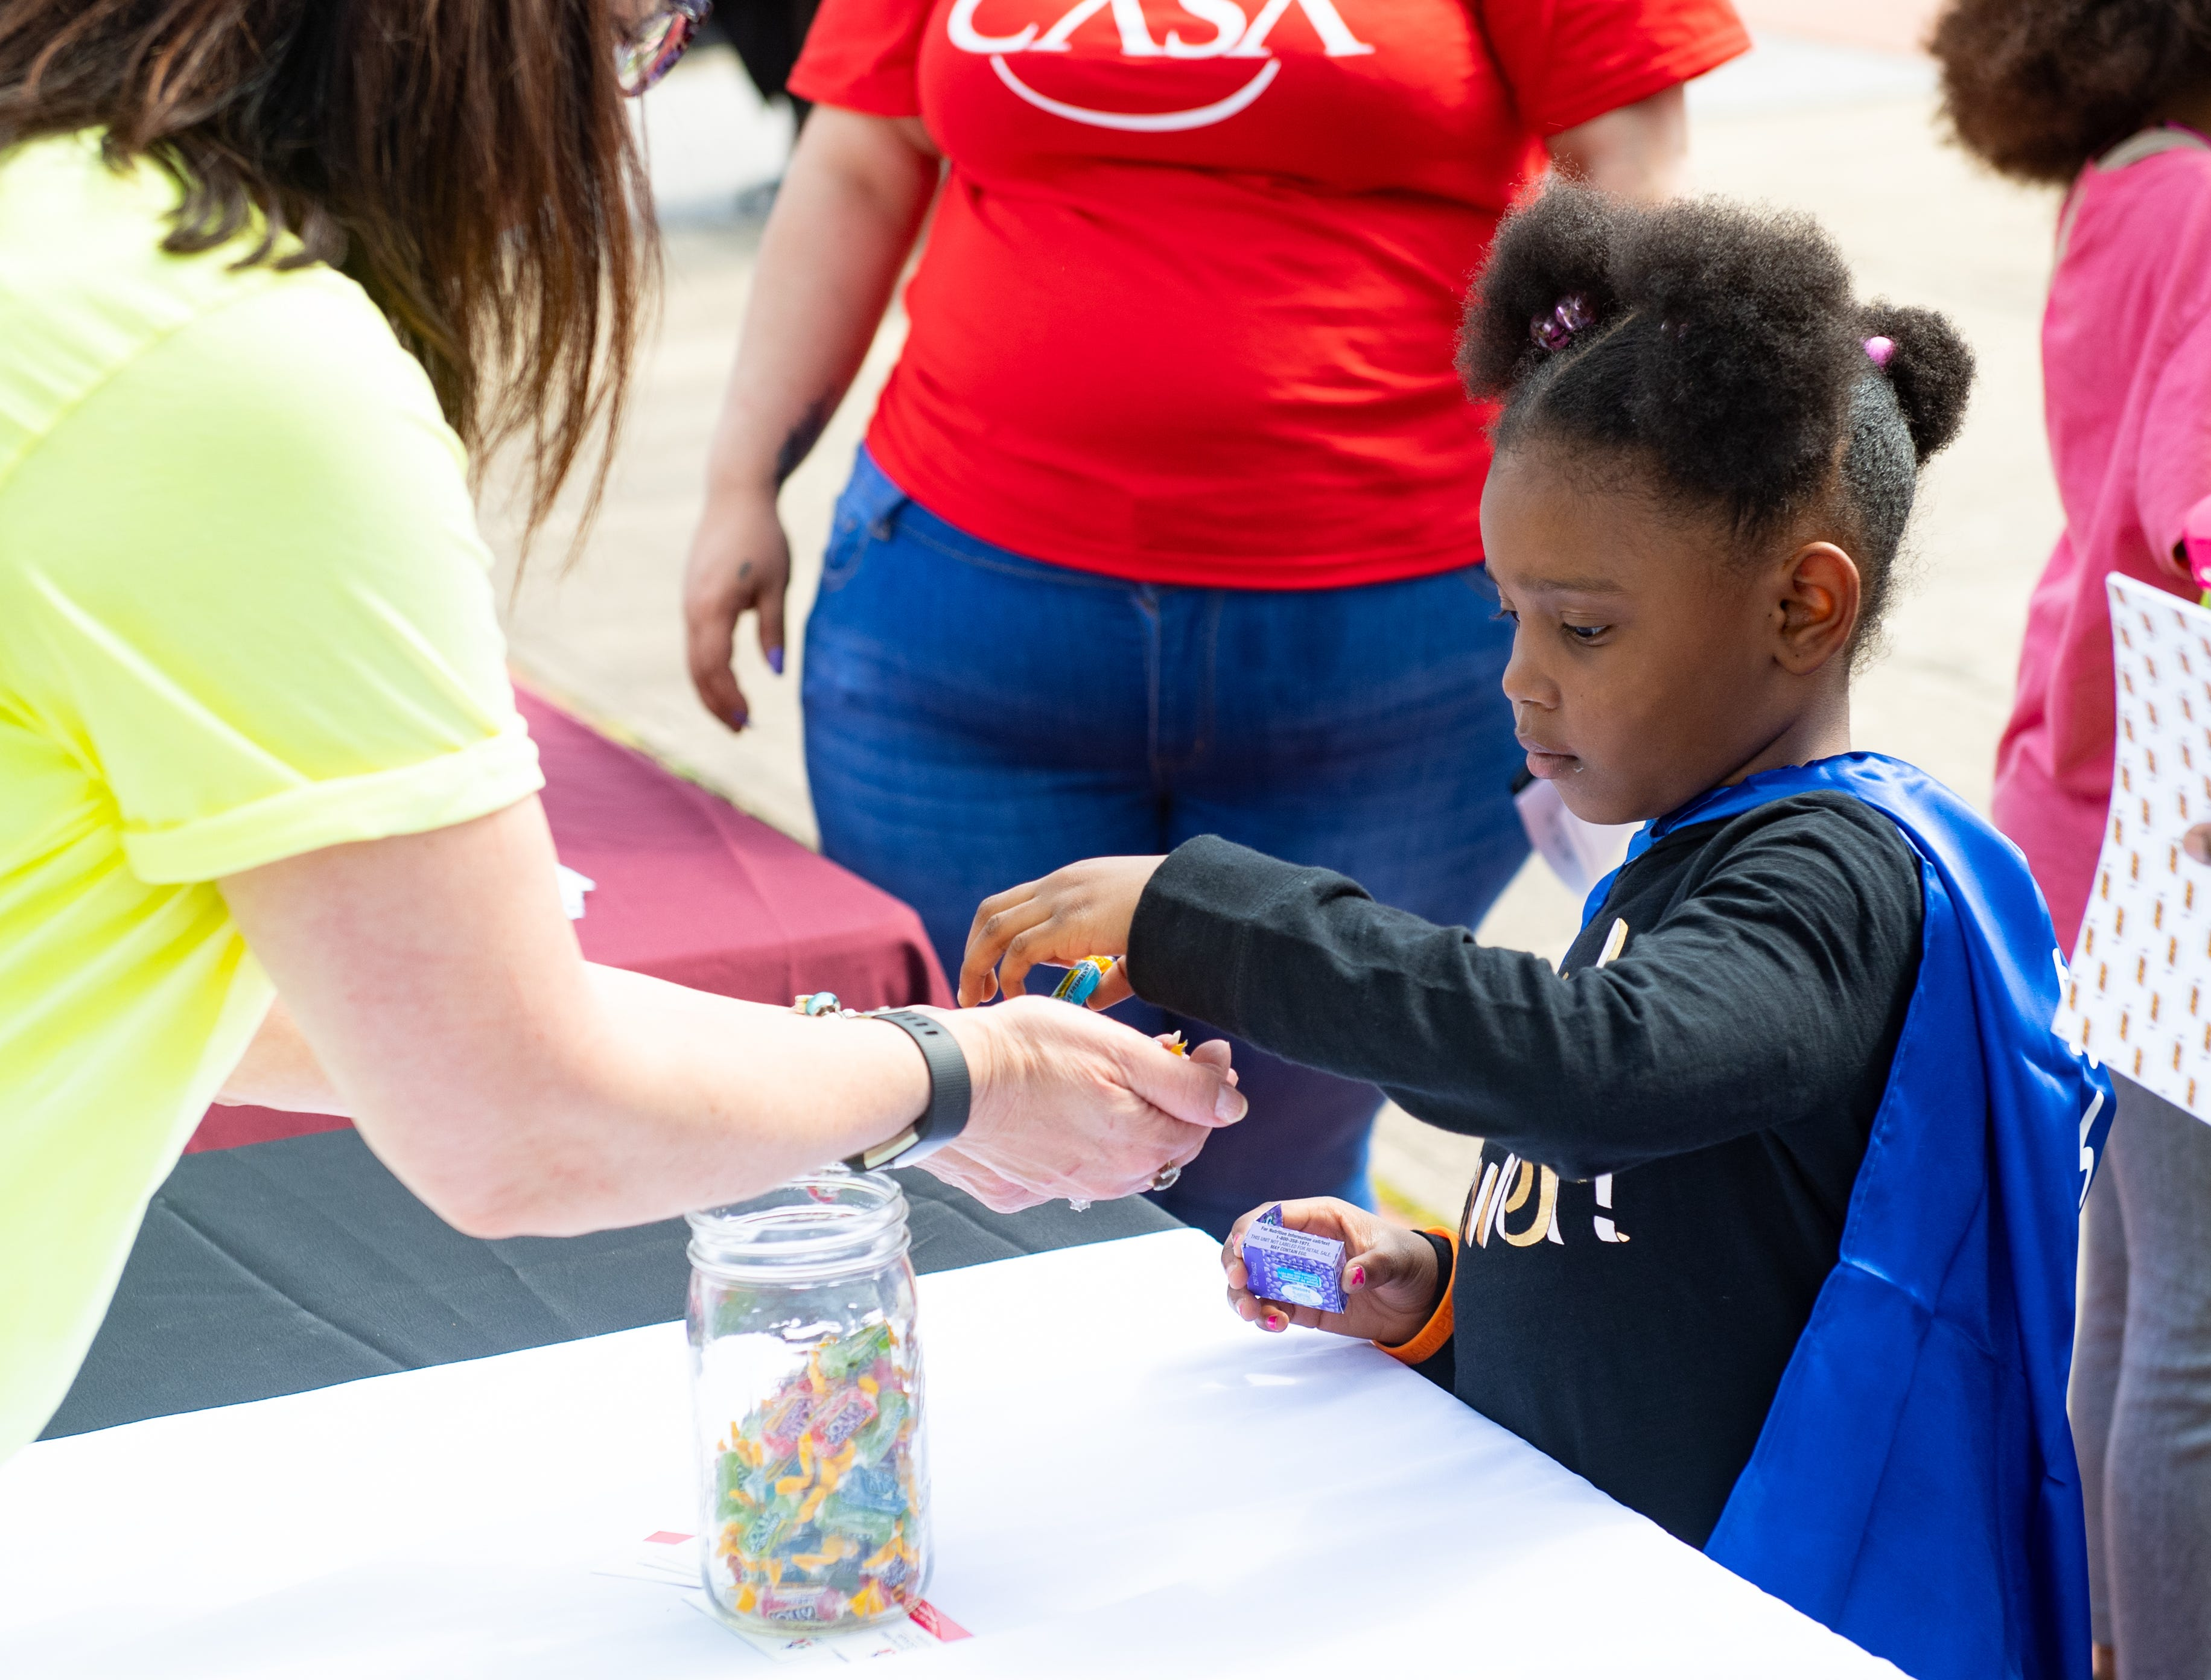 Children are given candy at every booth during the Adelante Festival at Renaissance Park, March 30, 2019.